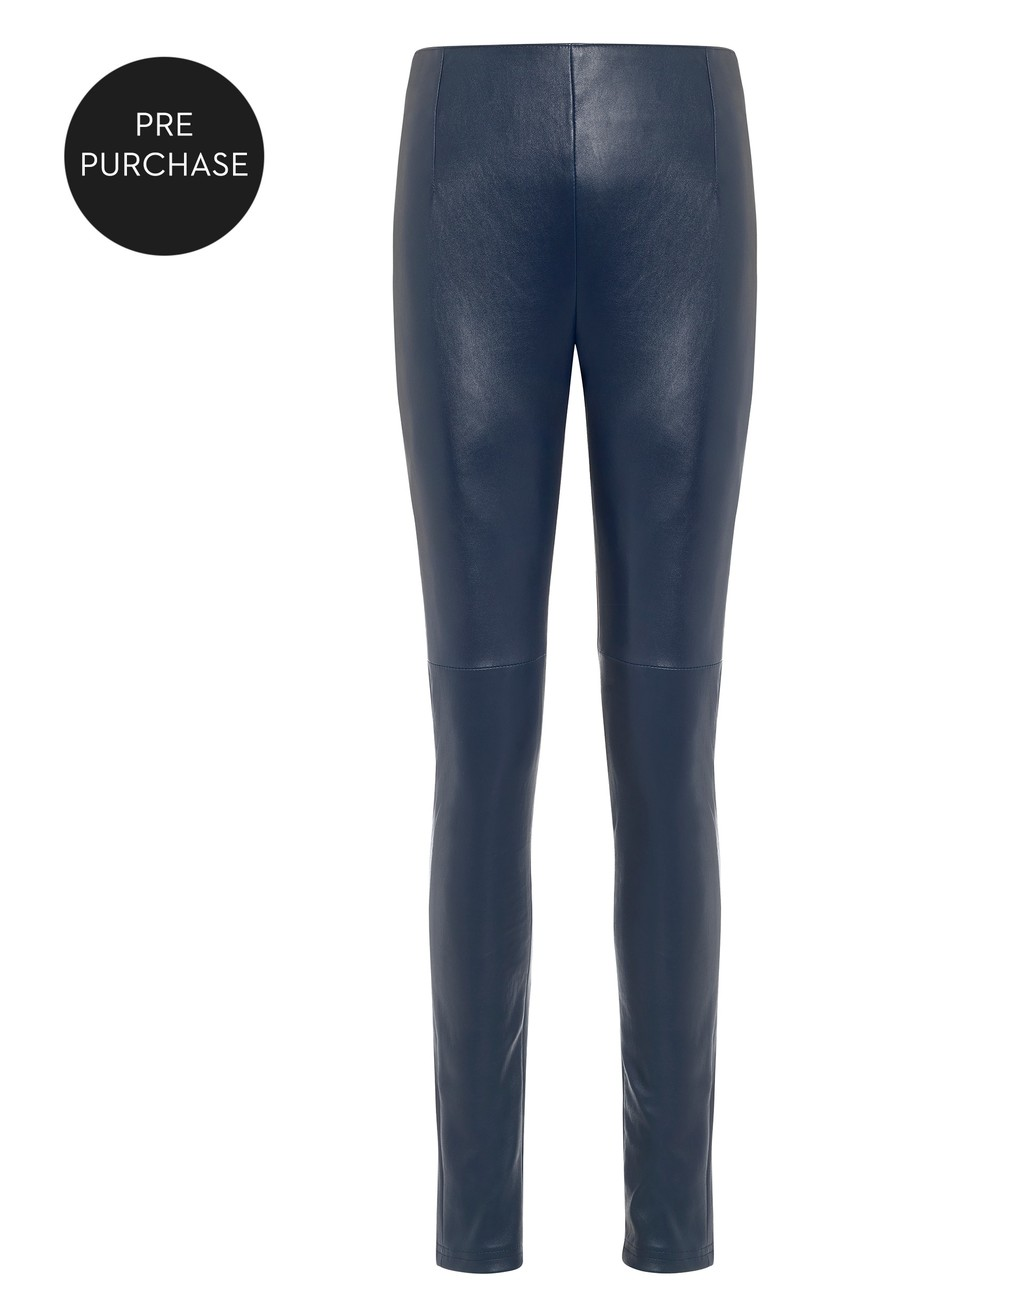 High Rise Full Leather Legging - length: standard; pattern: plain; waist: mid/regular rise; predominant colour: navy; occasions: casual, creative work; fibres: leather - 100%; texture group: leather; fit: skinny/tight leg; pattern type: fabric; style: standard; season: a/w 2016; wardrobe: highlight